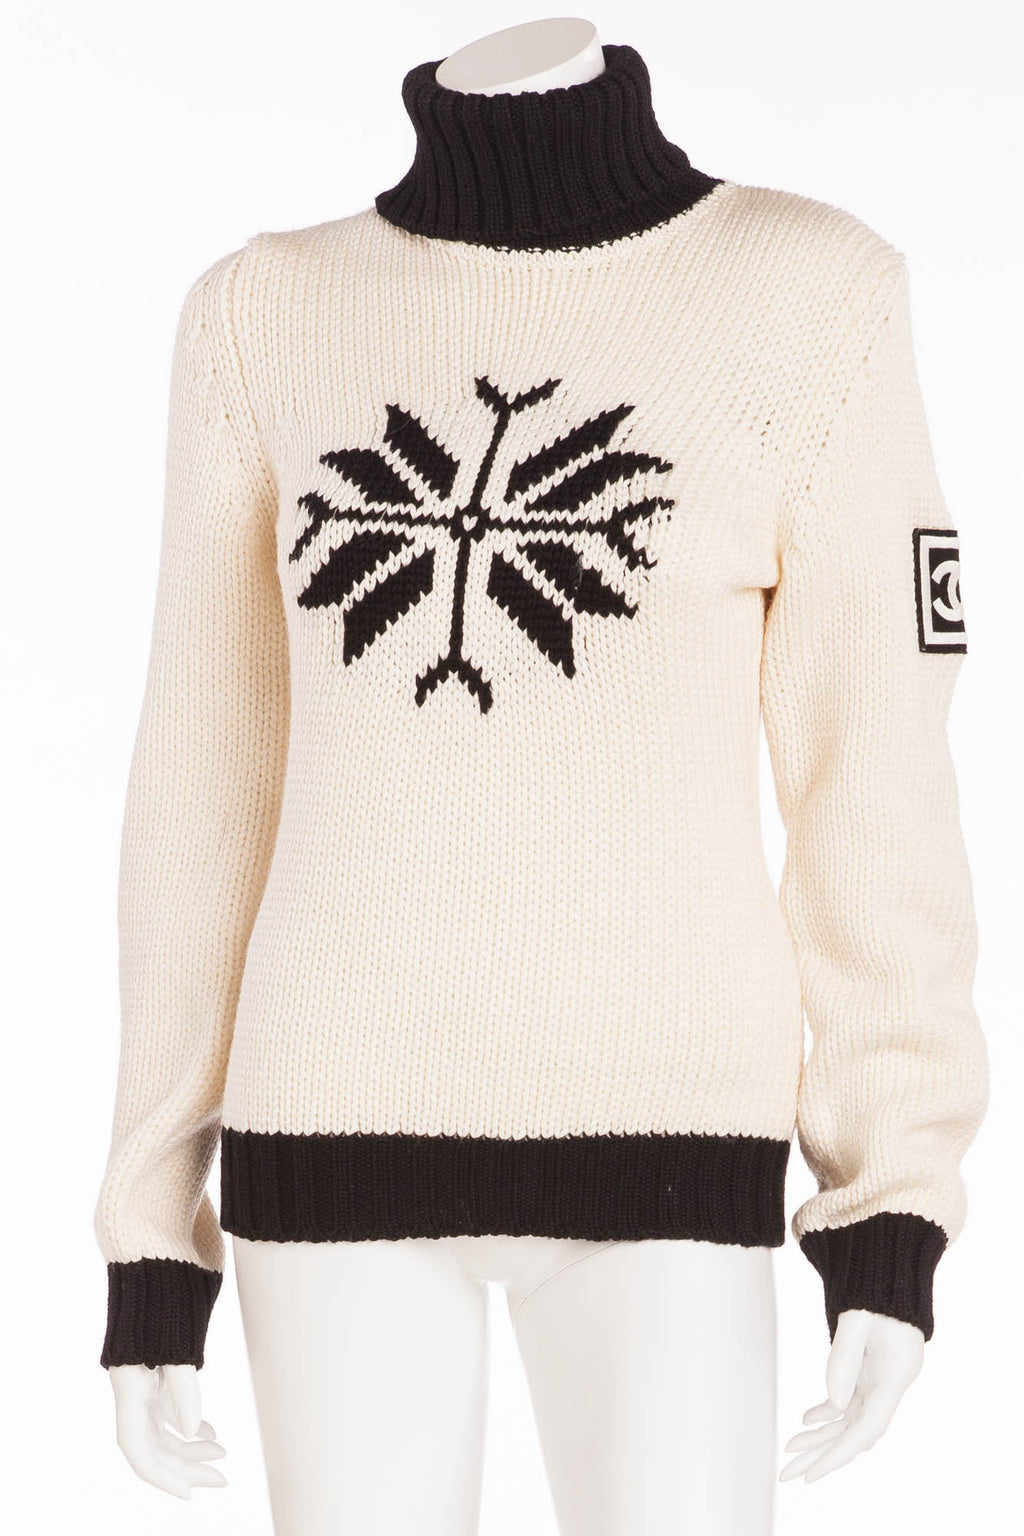 Chanel - Knitted White & Black Ski Sweater - FR 40